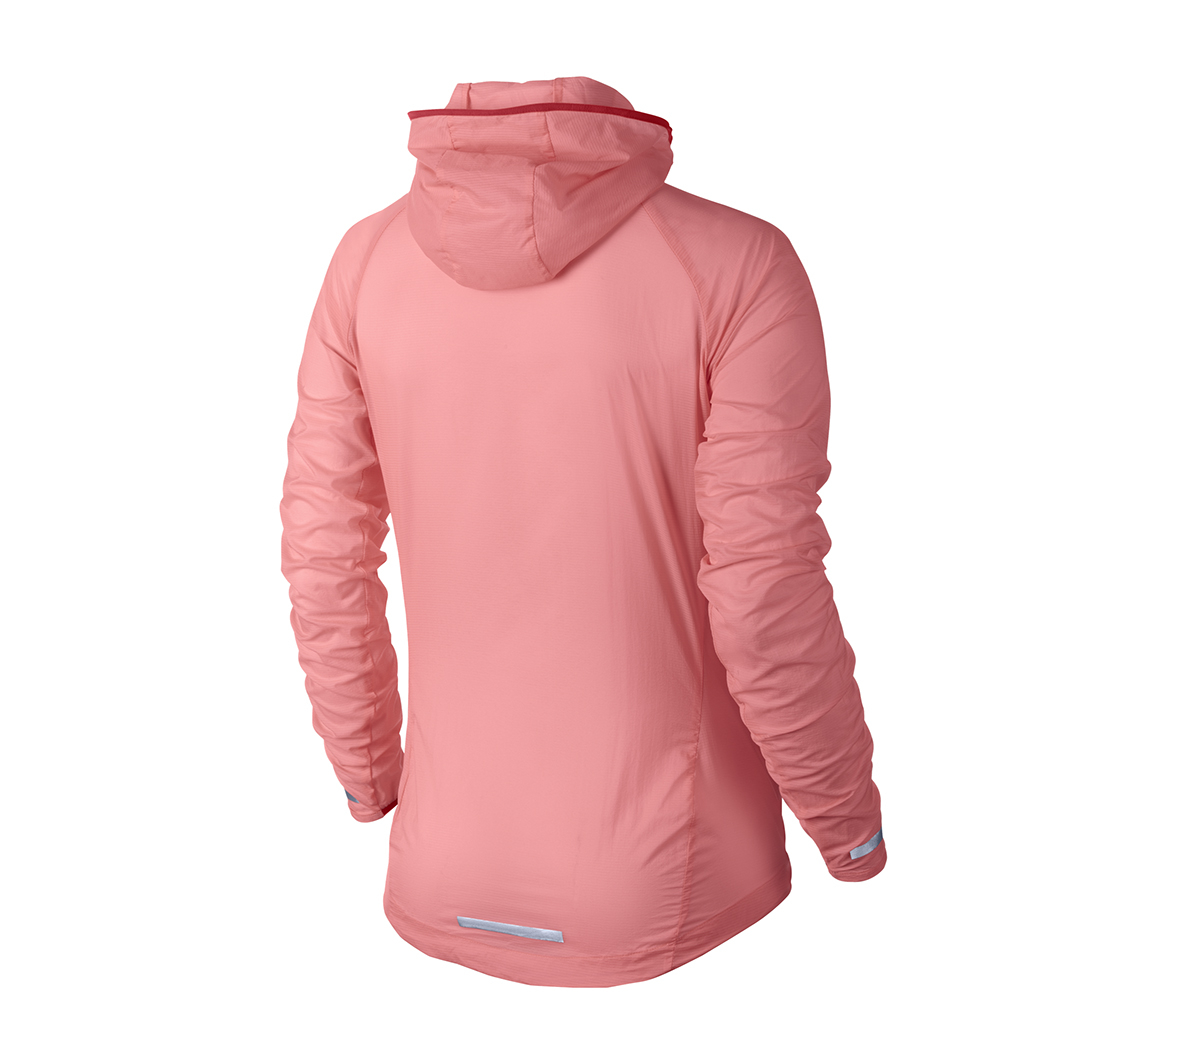 Nike Jacket Impossibly Light W In Pink Lyst